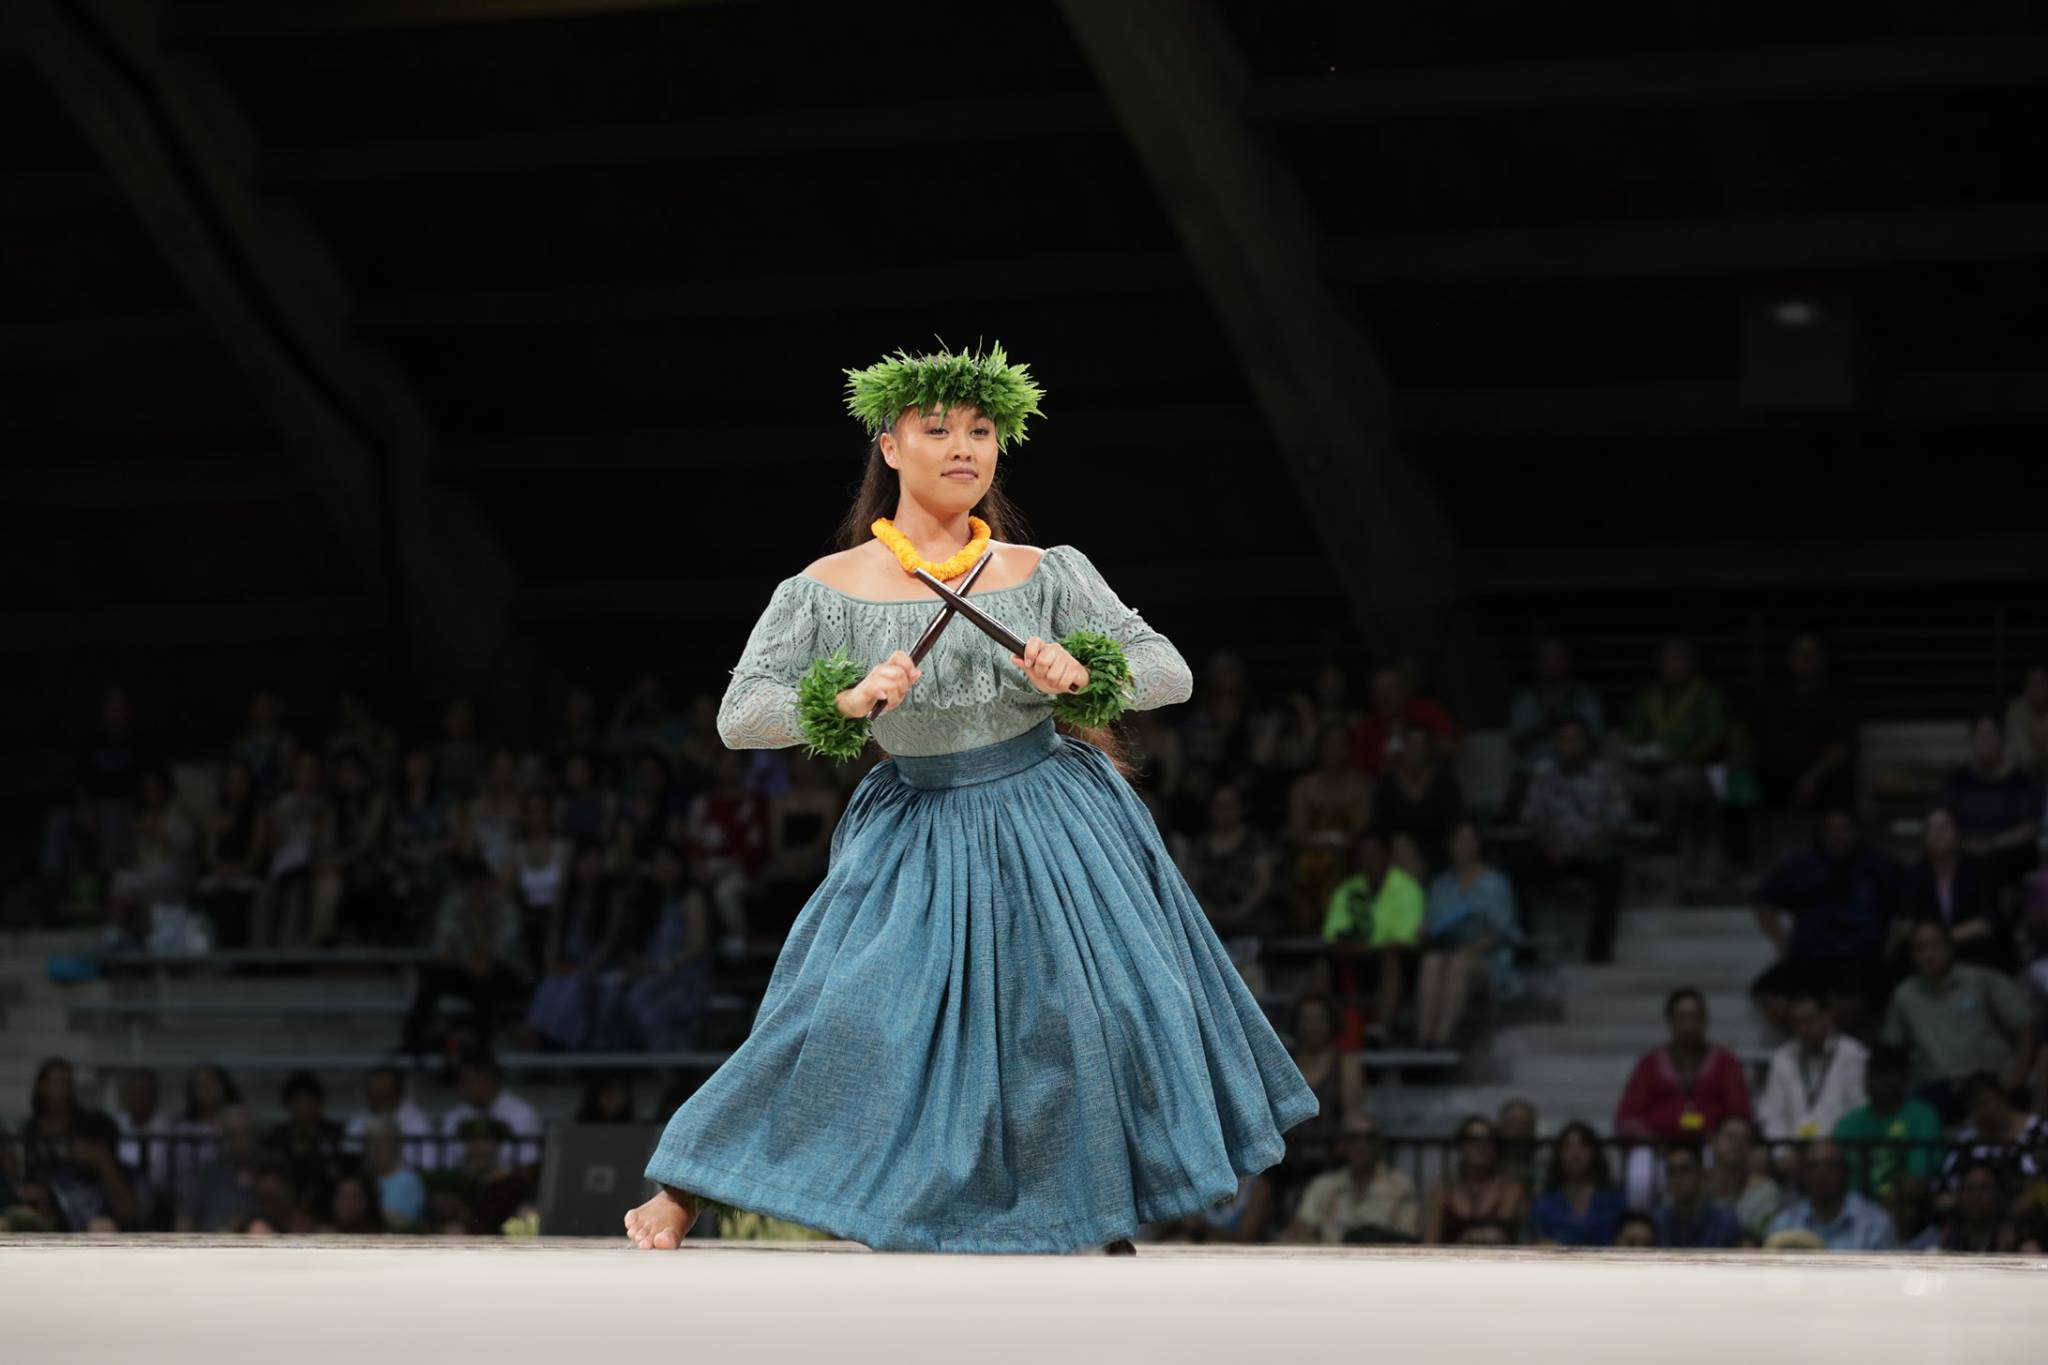 Miss Aloha Hula 2018 Results: Maui Hula Dancer Takes Title